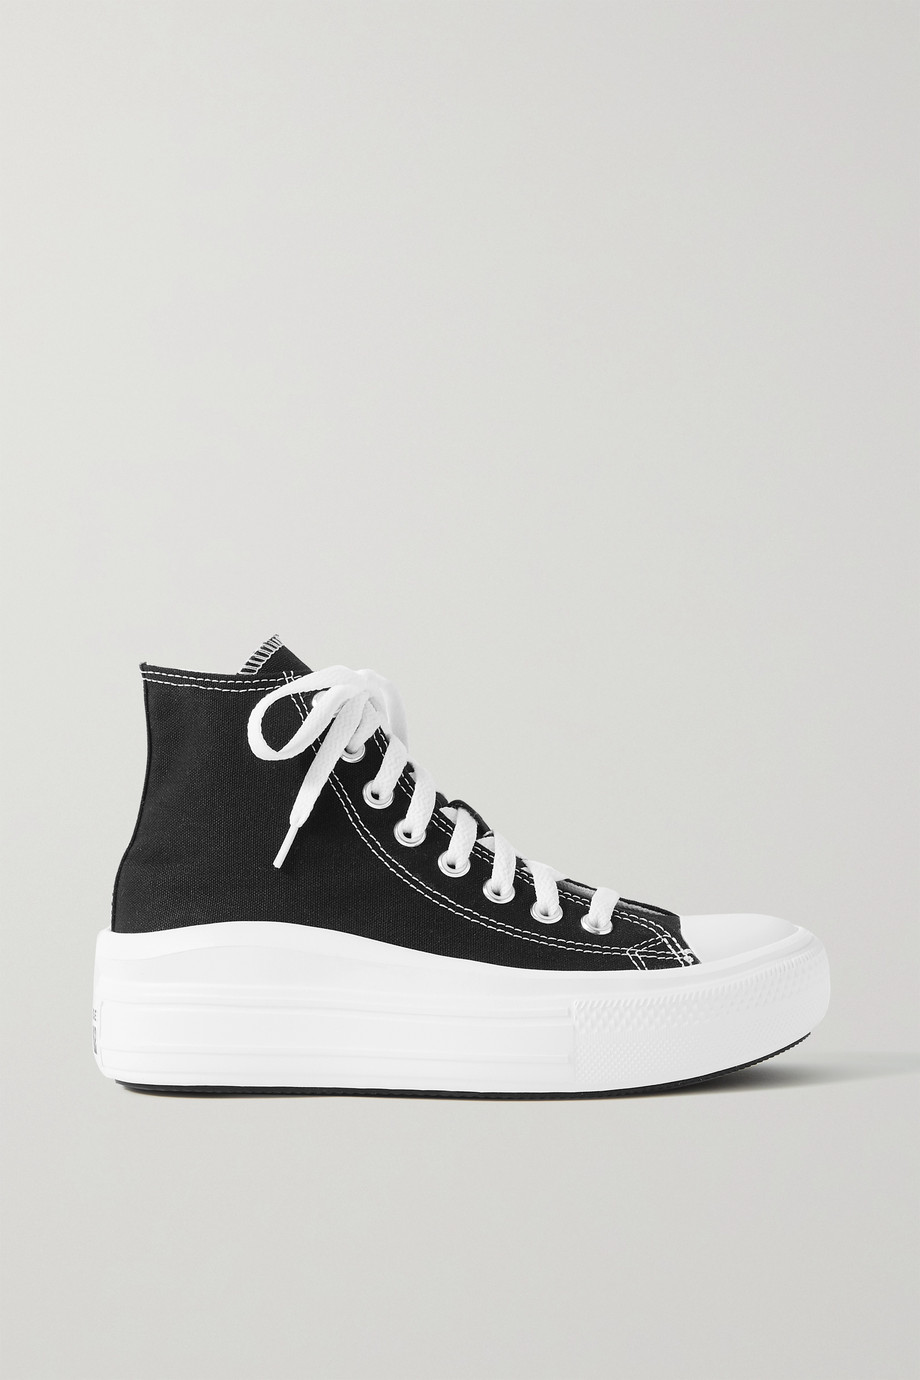 Converse Chuck Taylor All Star Move canvas high-top platform sneakers